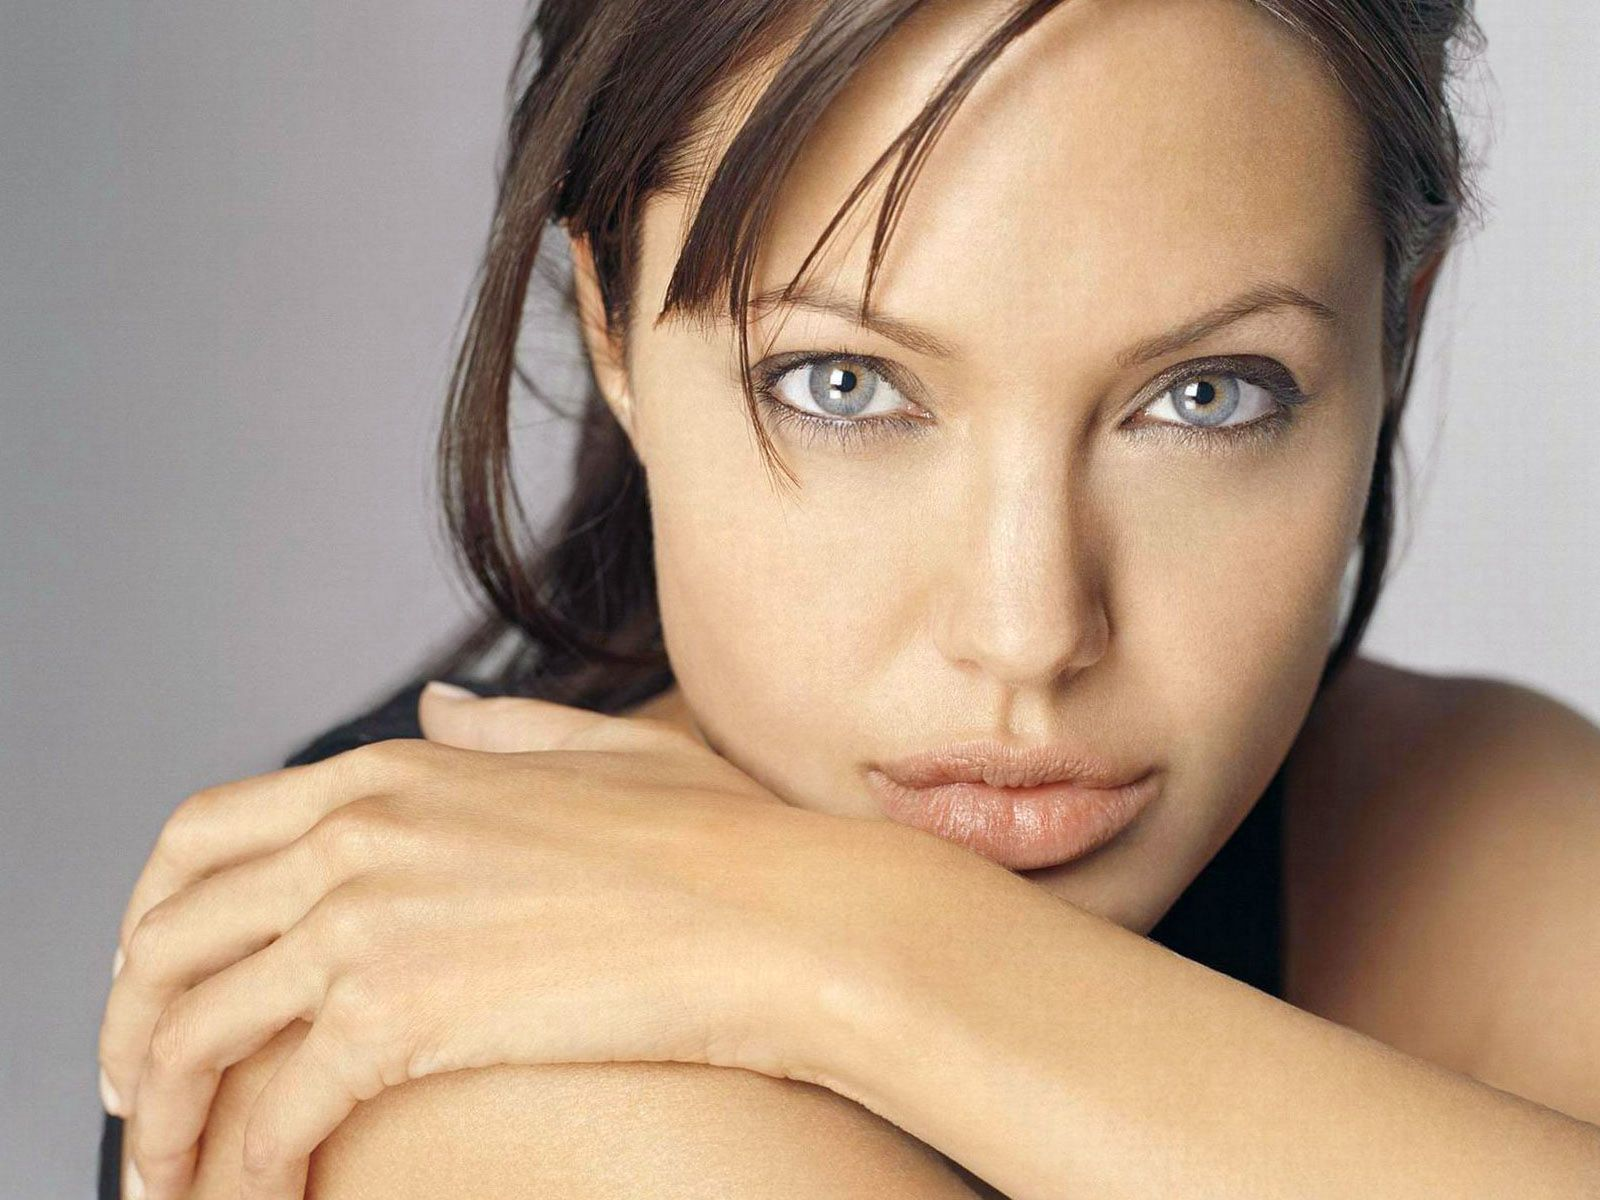 angelina jolie lawfuel